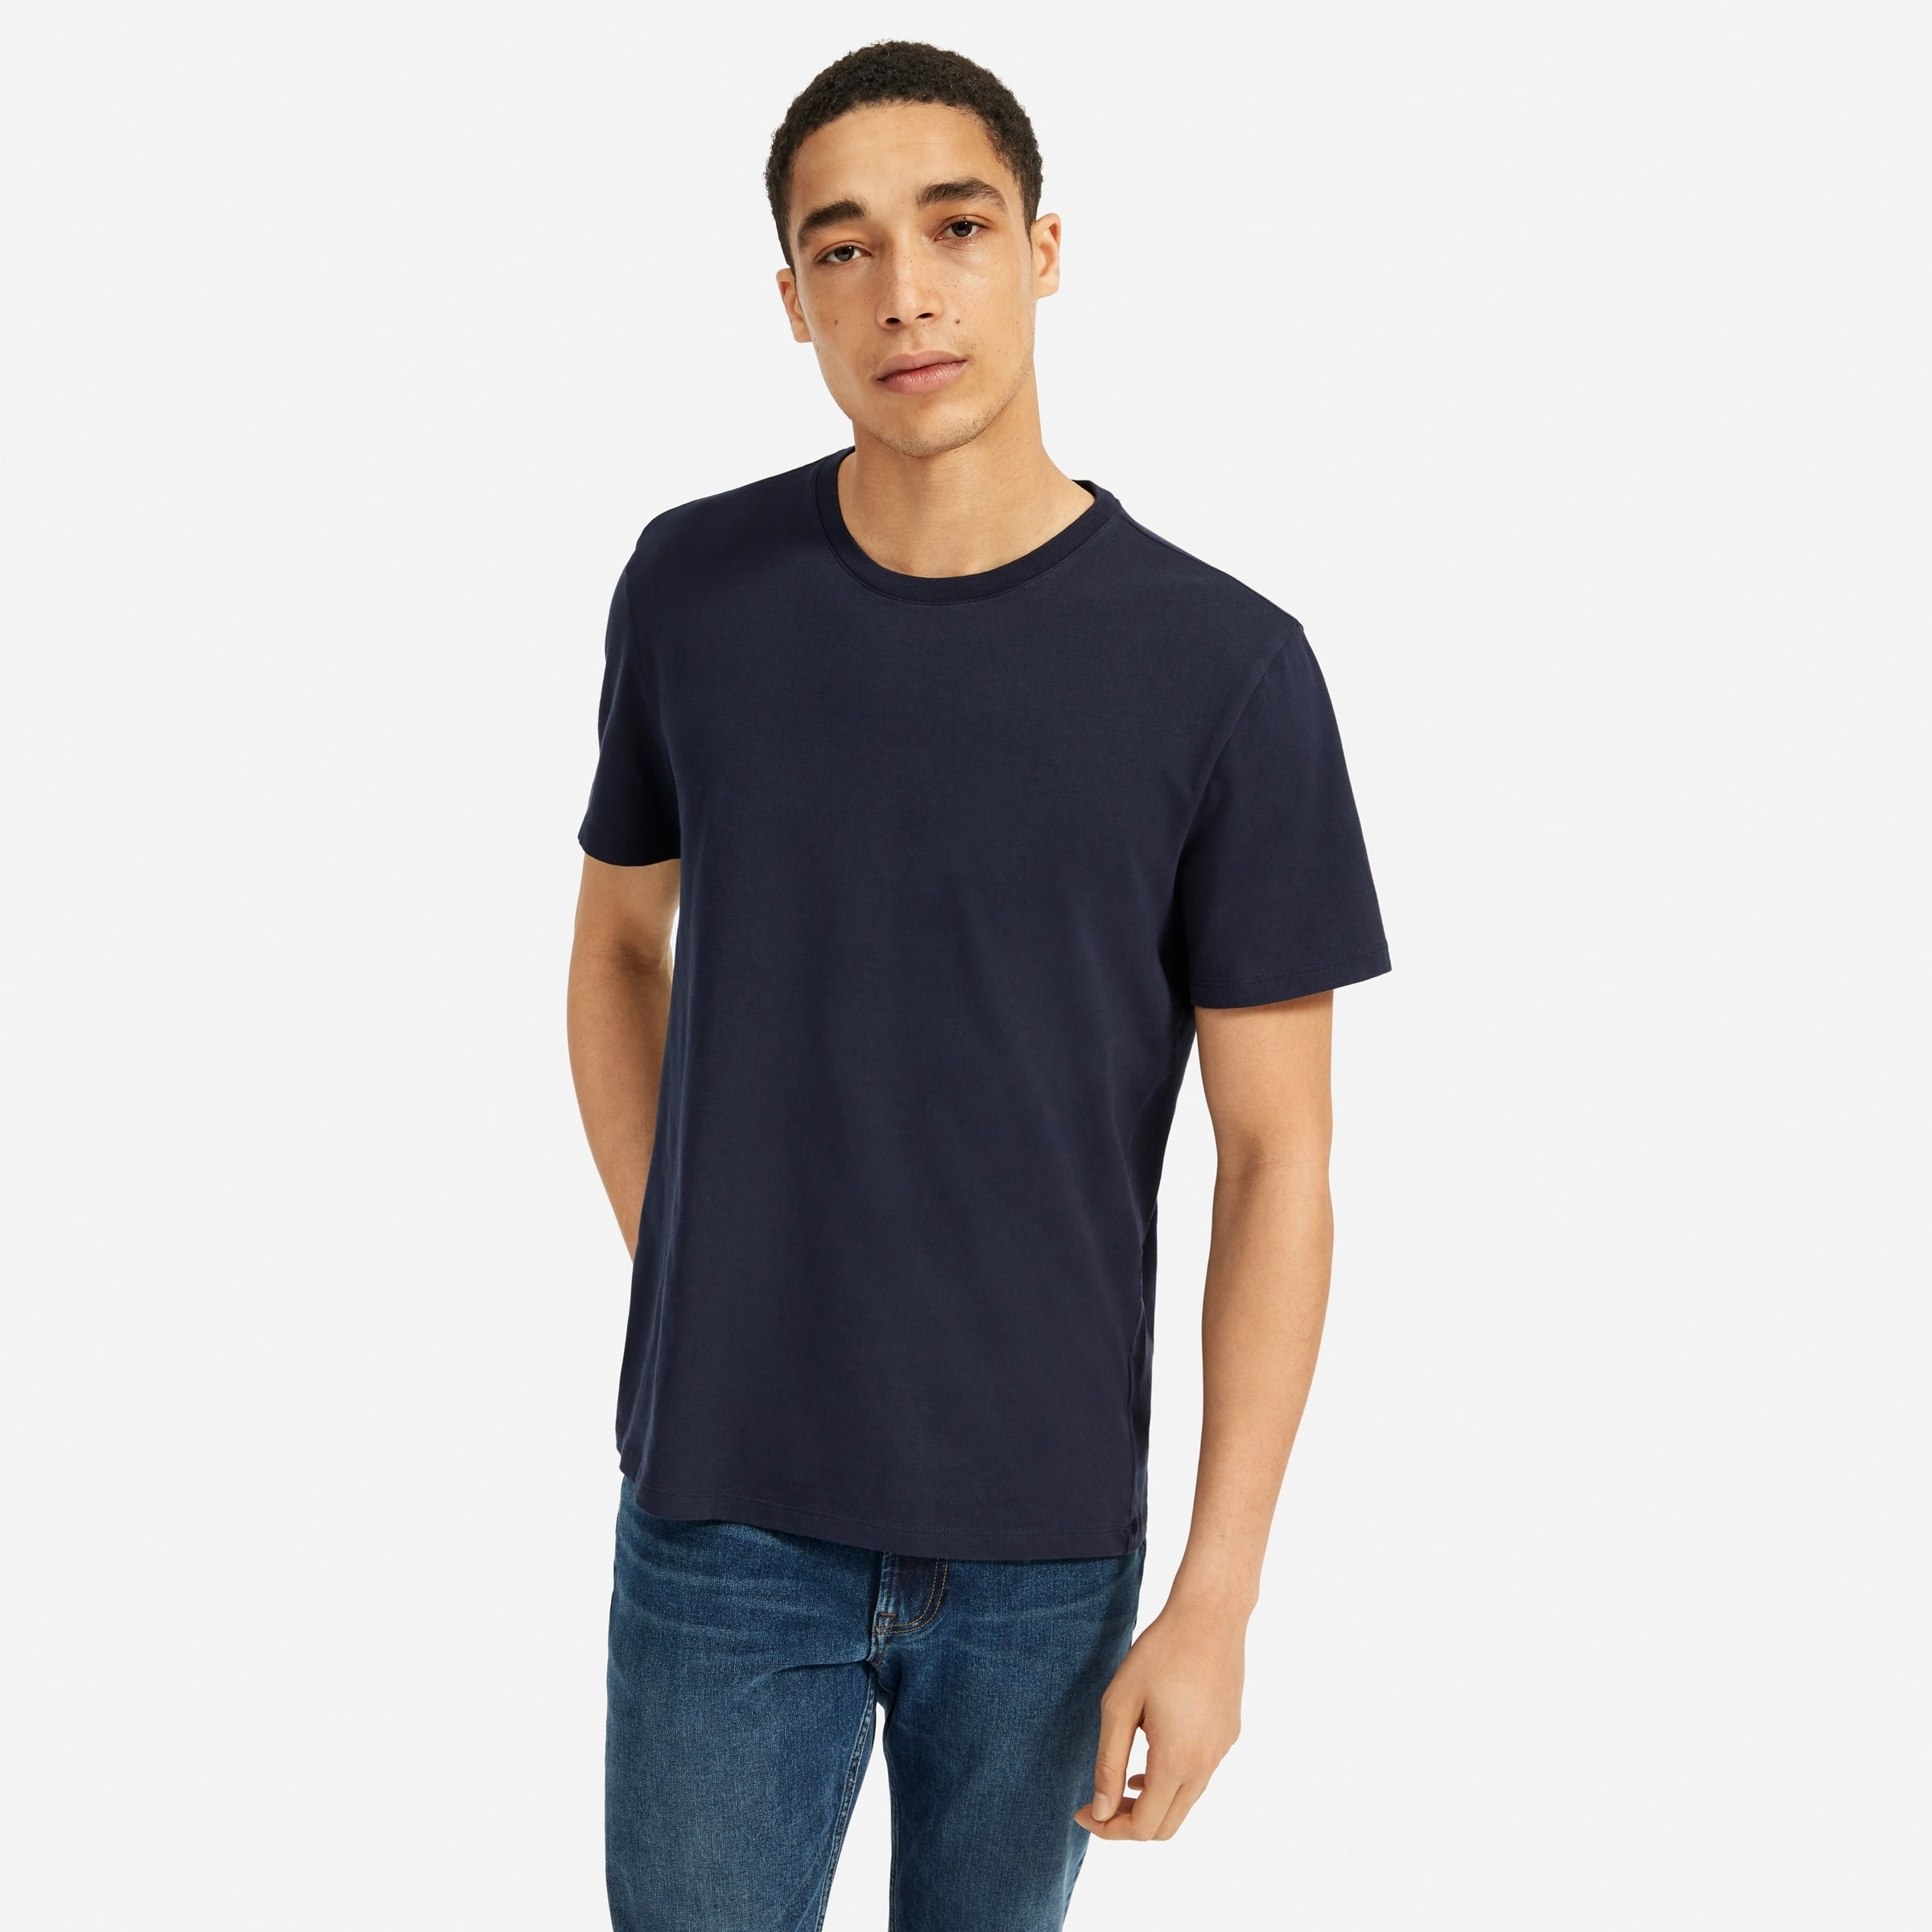 Model wearing the organic cotton crew in navy